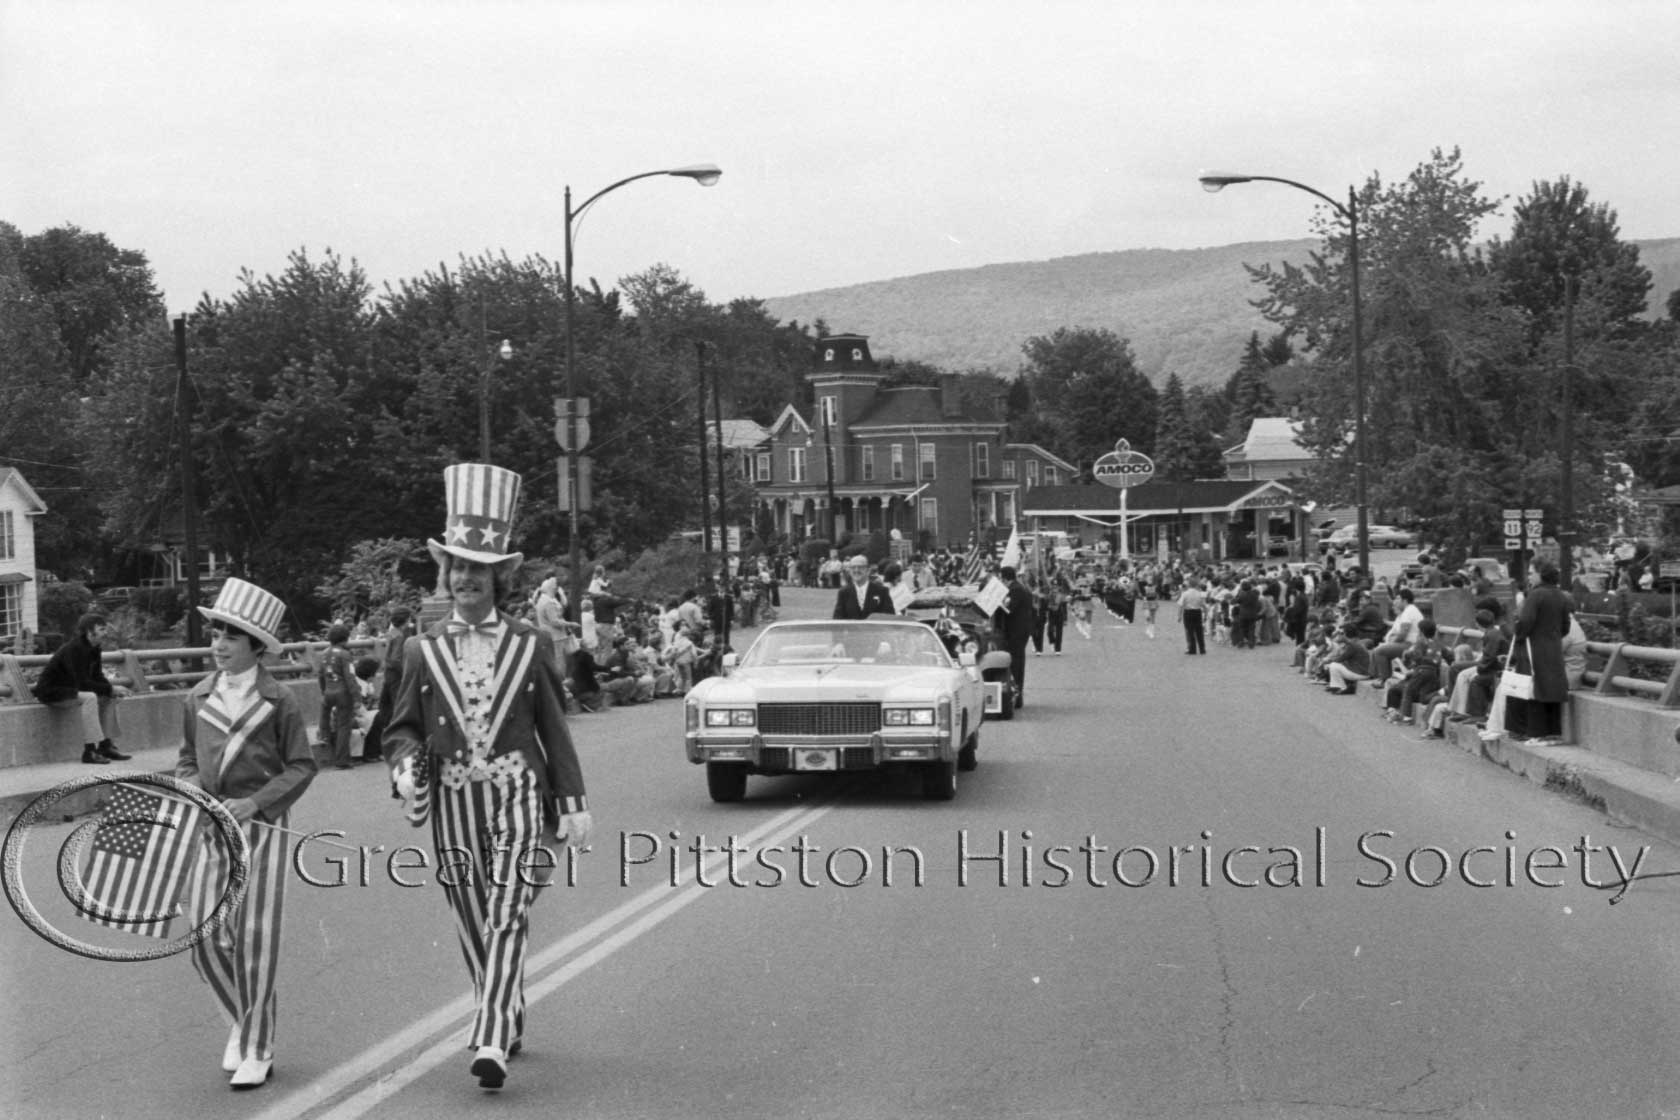 P. J. Melvin marching in Pittston's parade to mark the American Bicentennial, 1976. Sunday Dispatch Photographic Collection (1976.1.0222), Greater Pittston Historical Society, Pittston, PA.